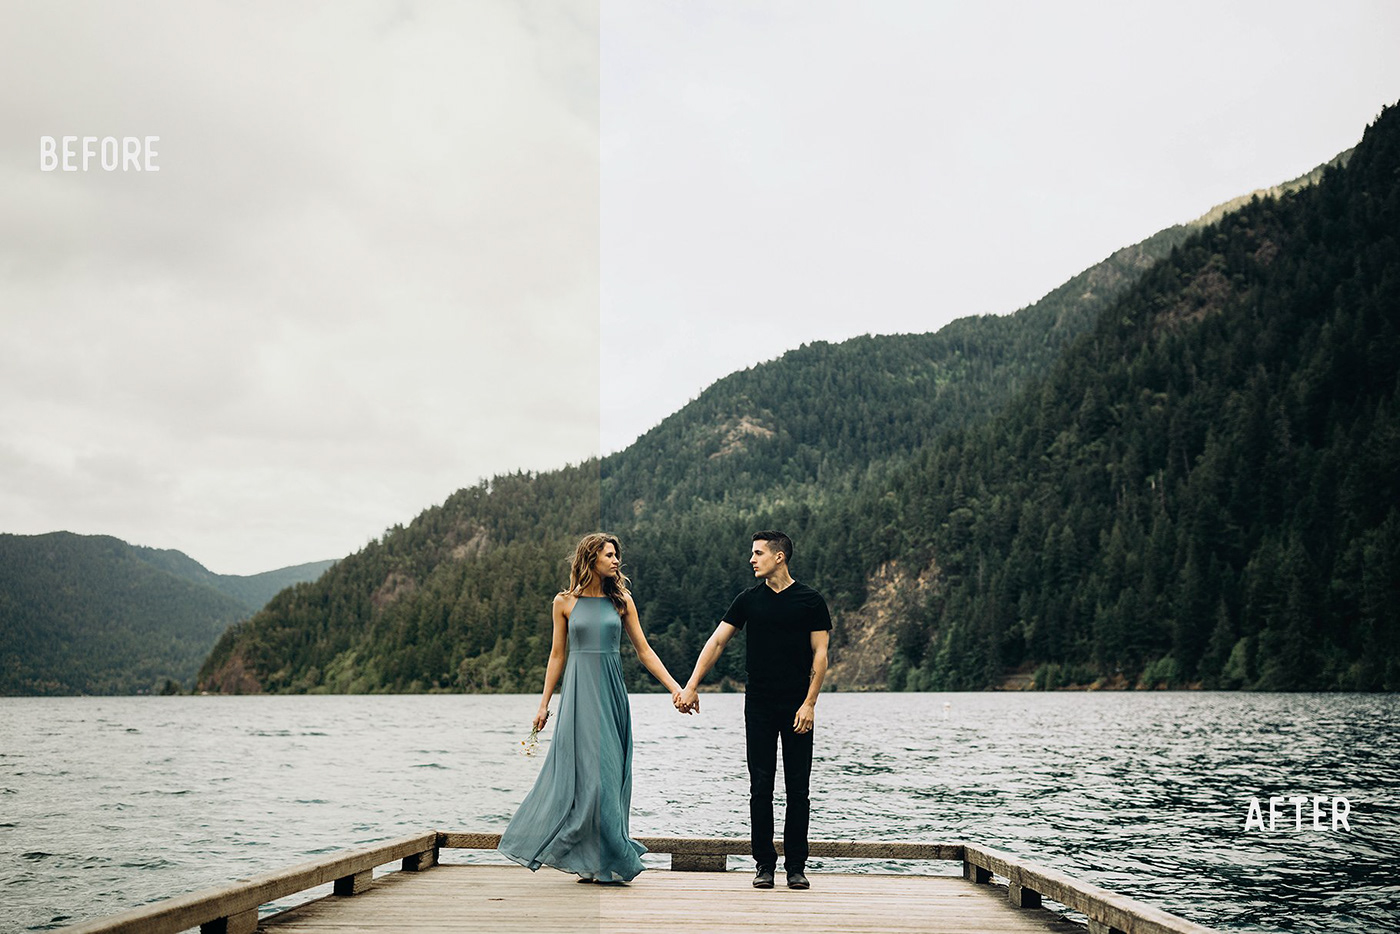 VSCO A series 01 Lightroom presets FREE DOWNLOAD! on Behance